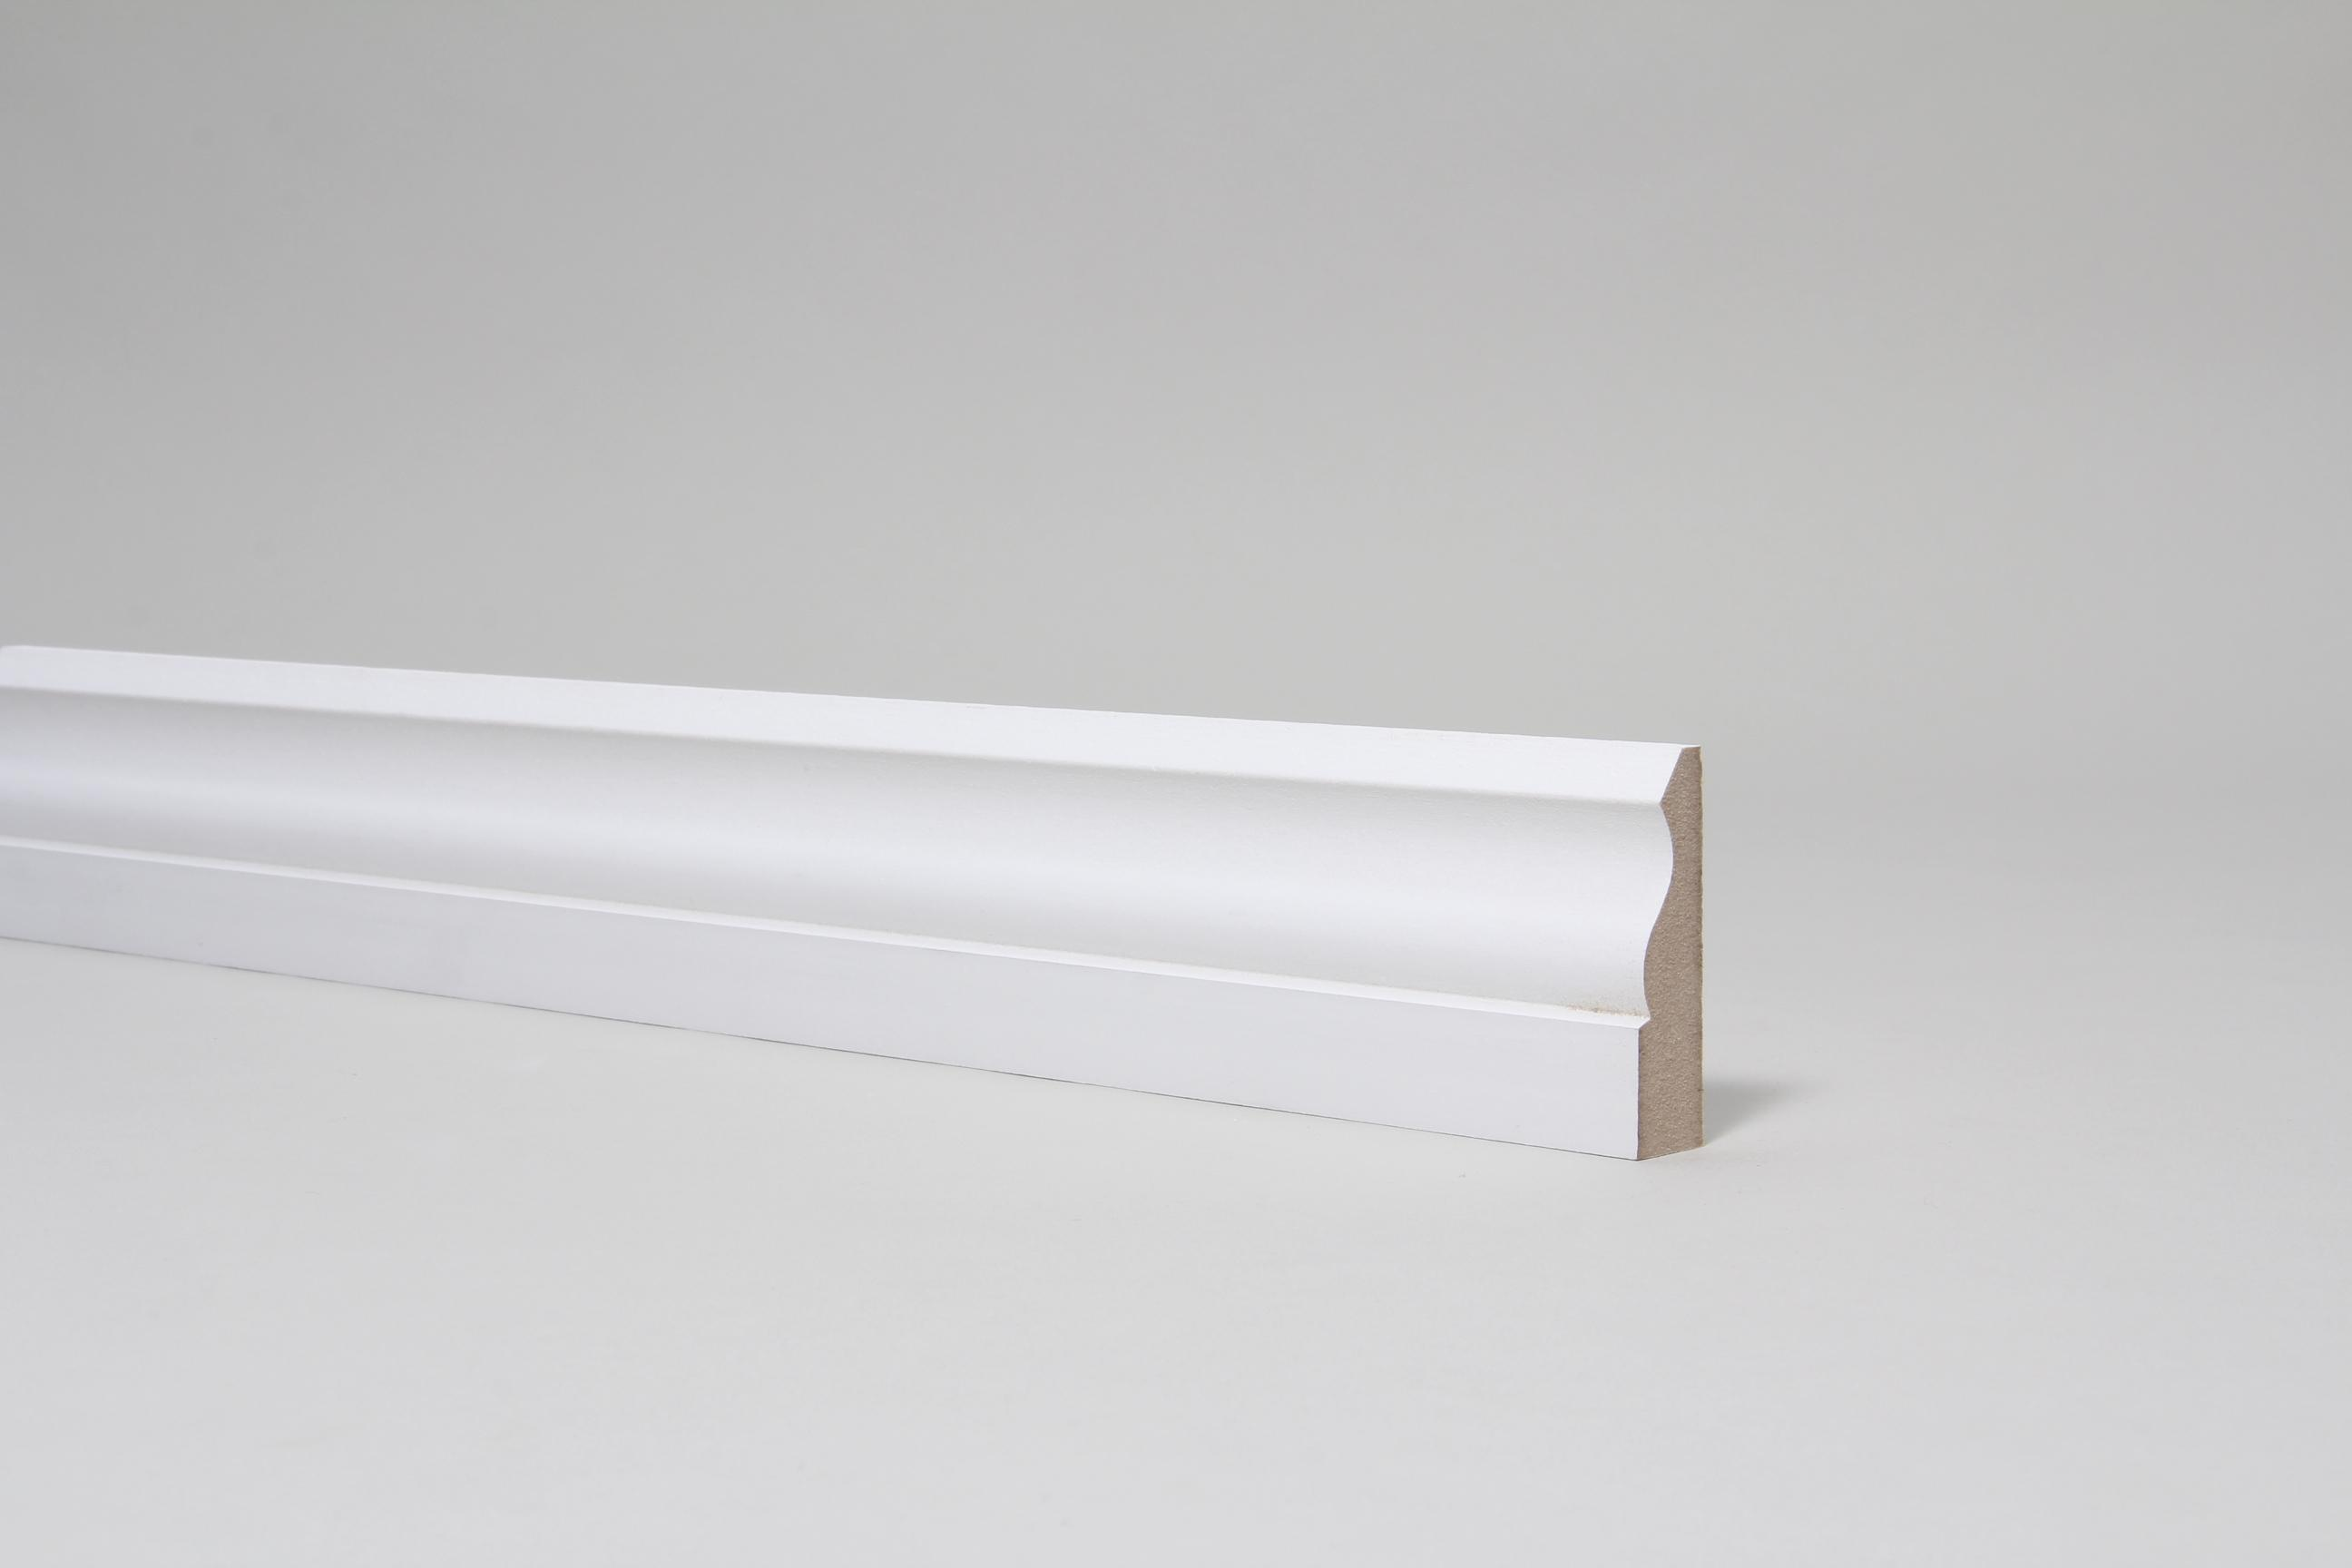 Ogee 18mm x 68mm x 4.4 Mtr Primed